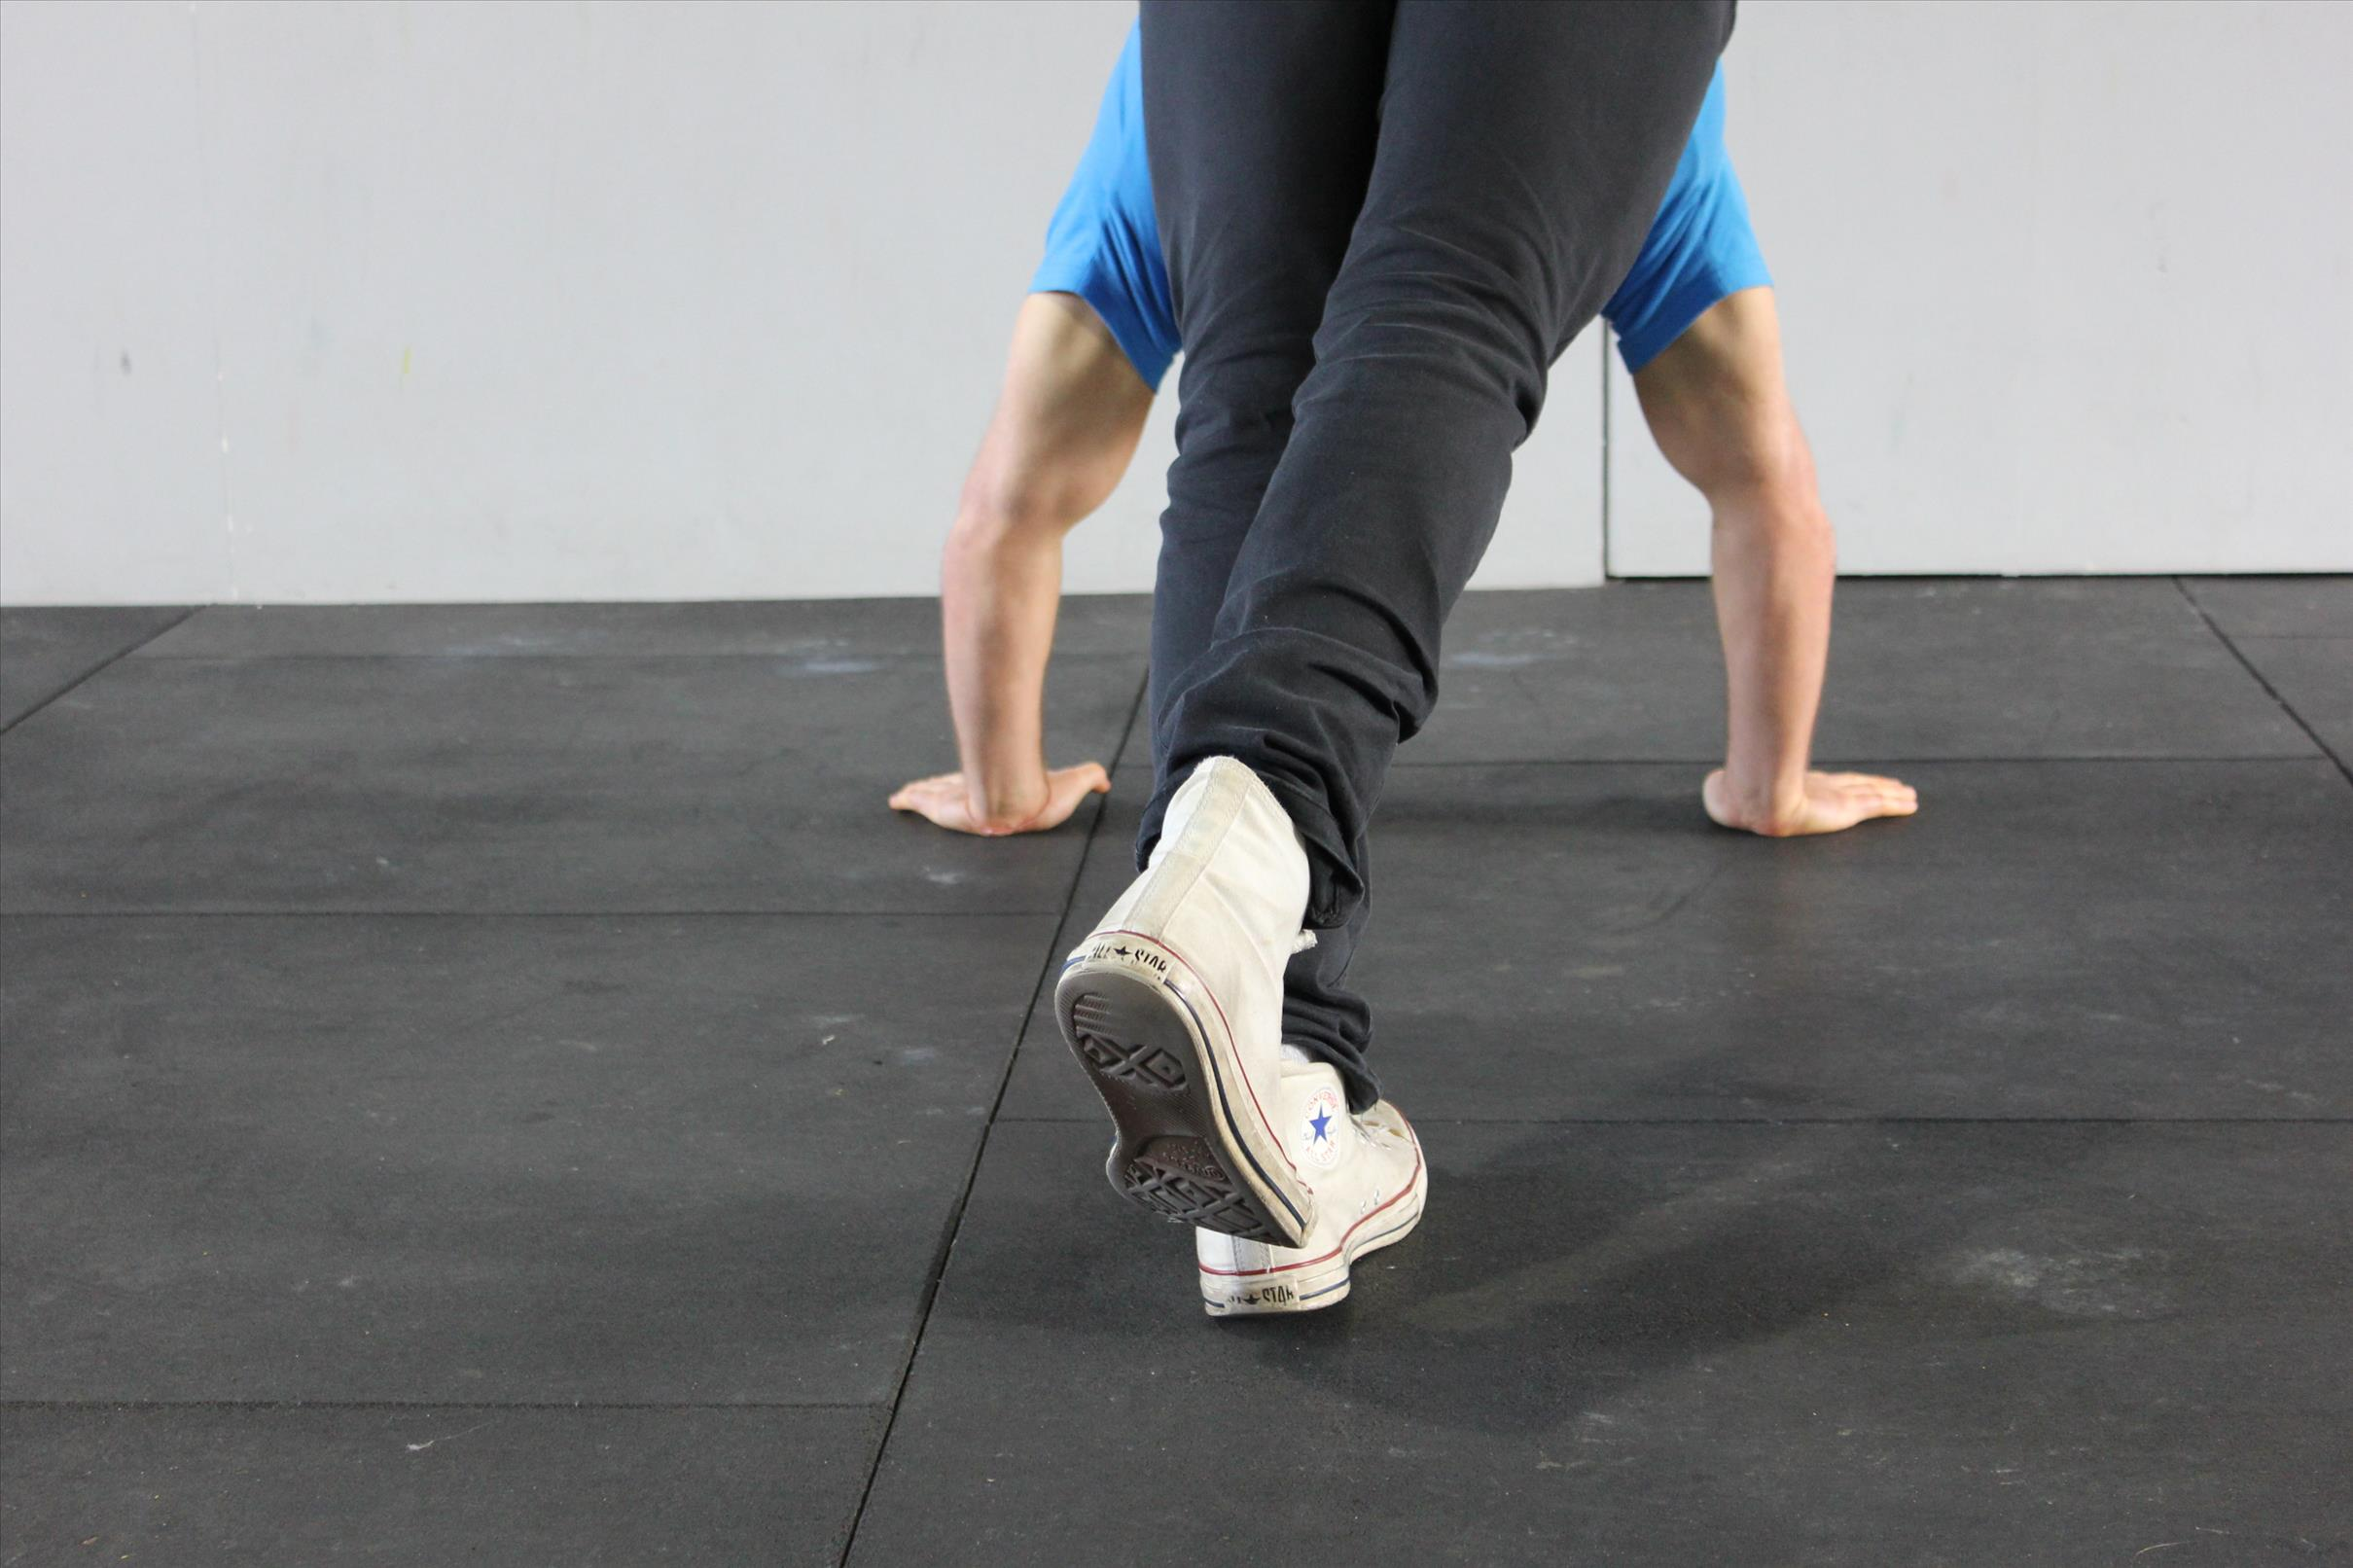 Move the base foot from side to side maintaining pressure on the back of the heel